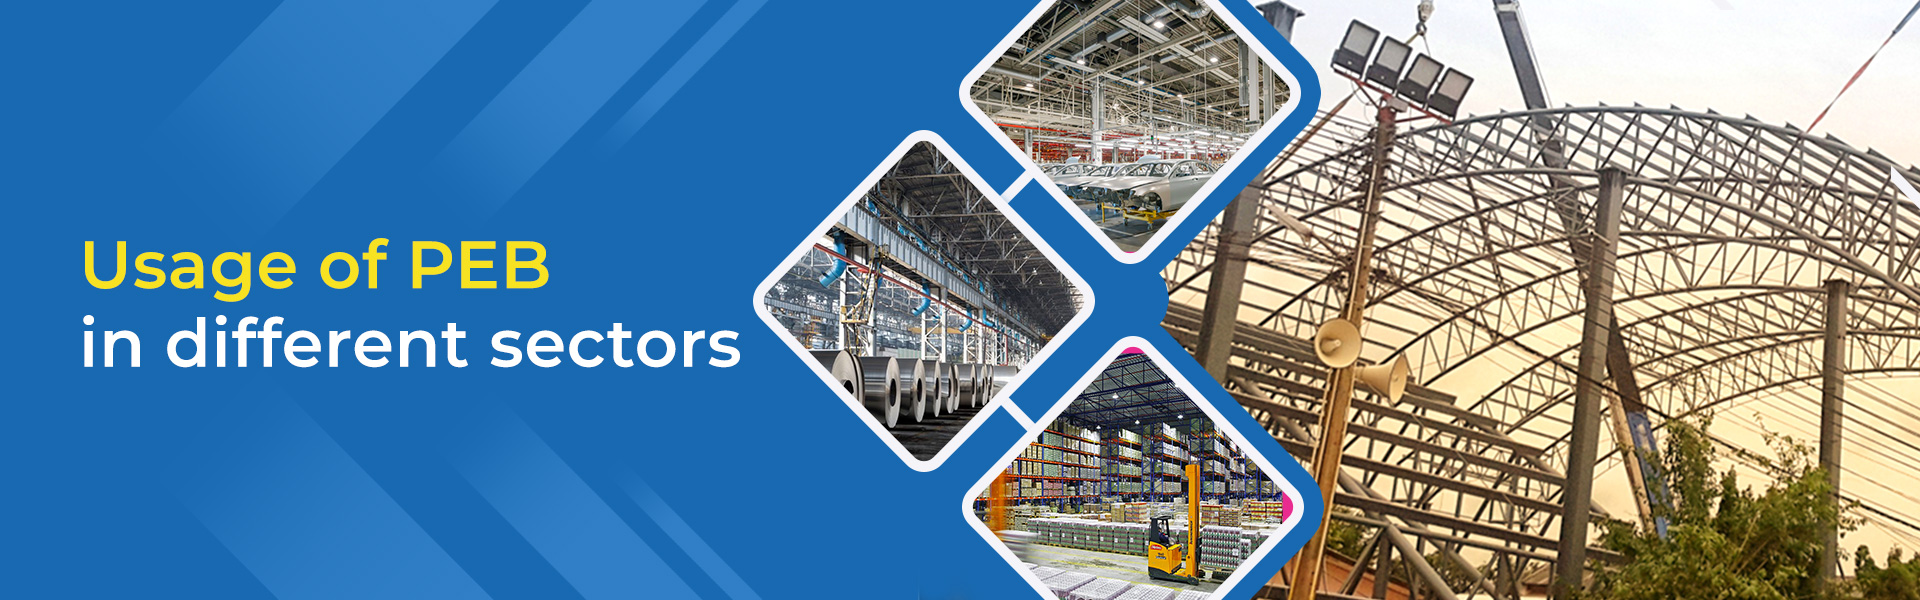 Pre-Engineered Buildings (PEB) Manufacturers – A Sunrise Sector